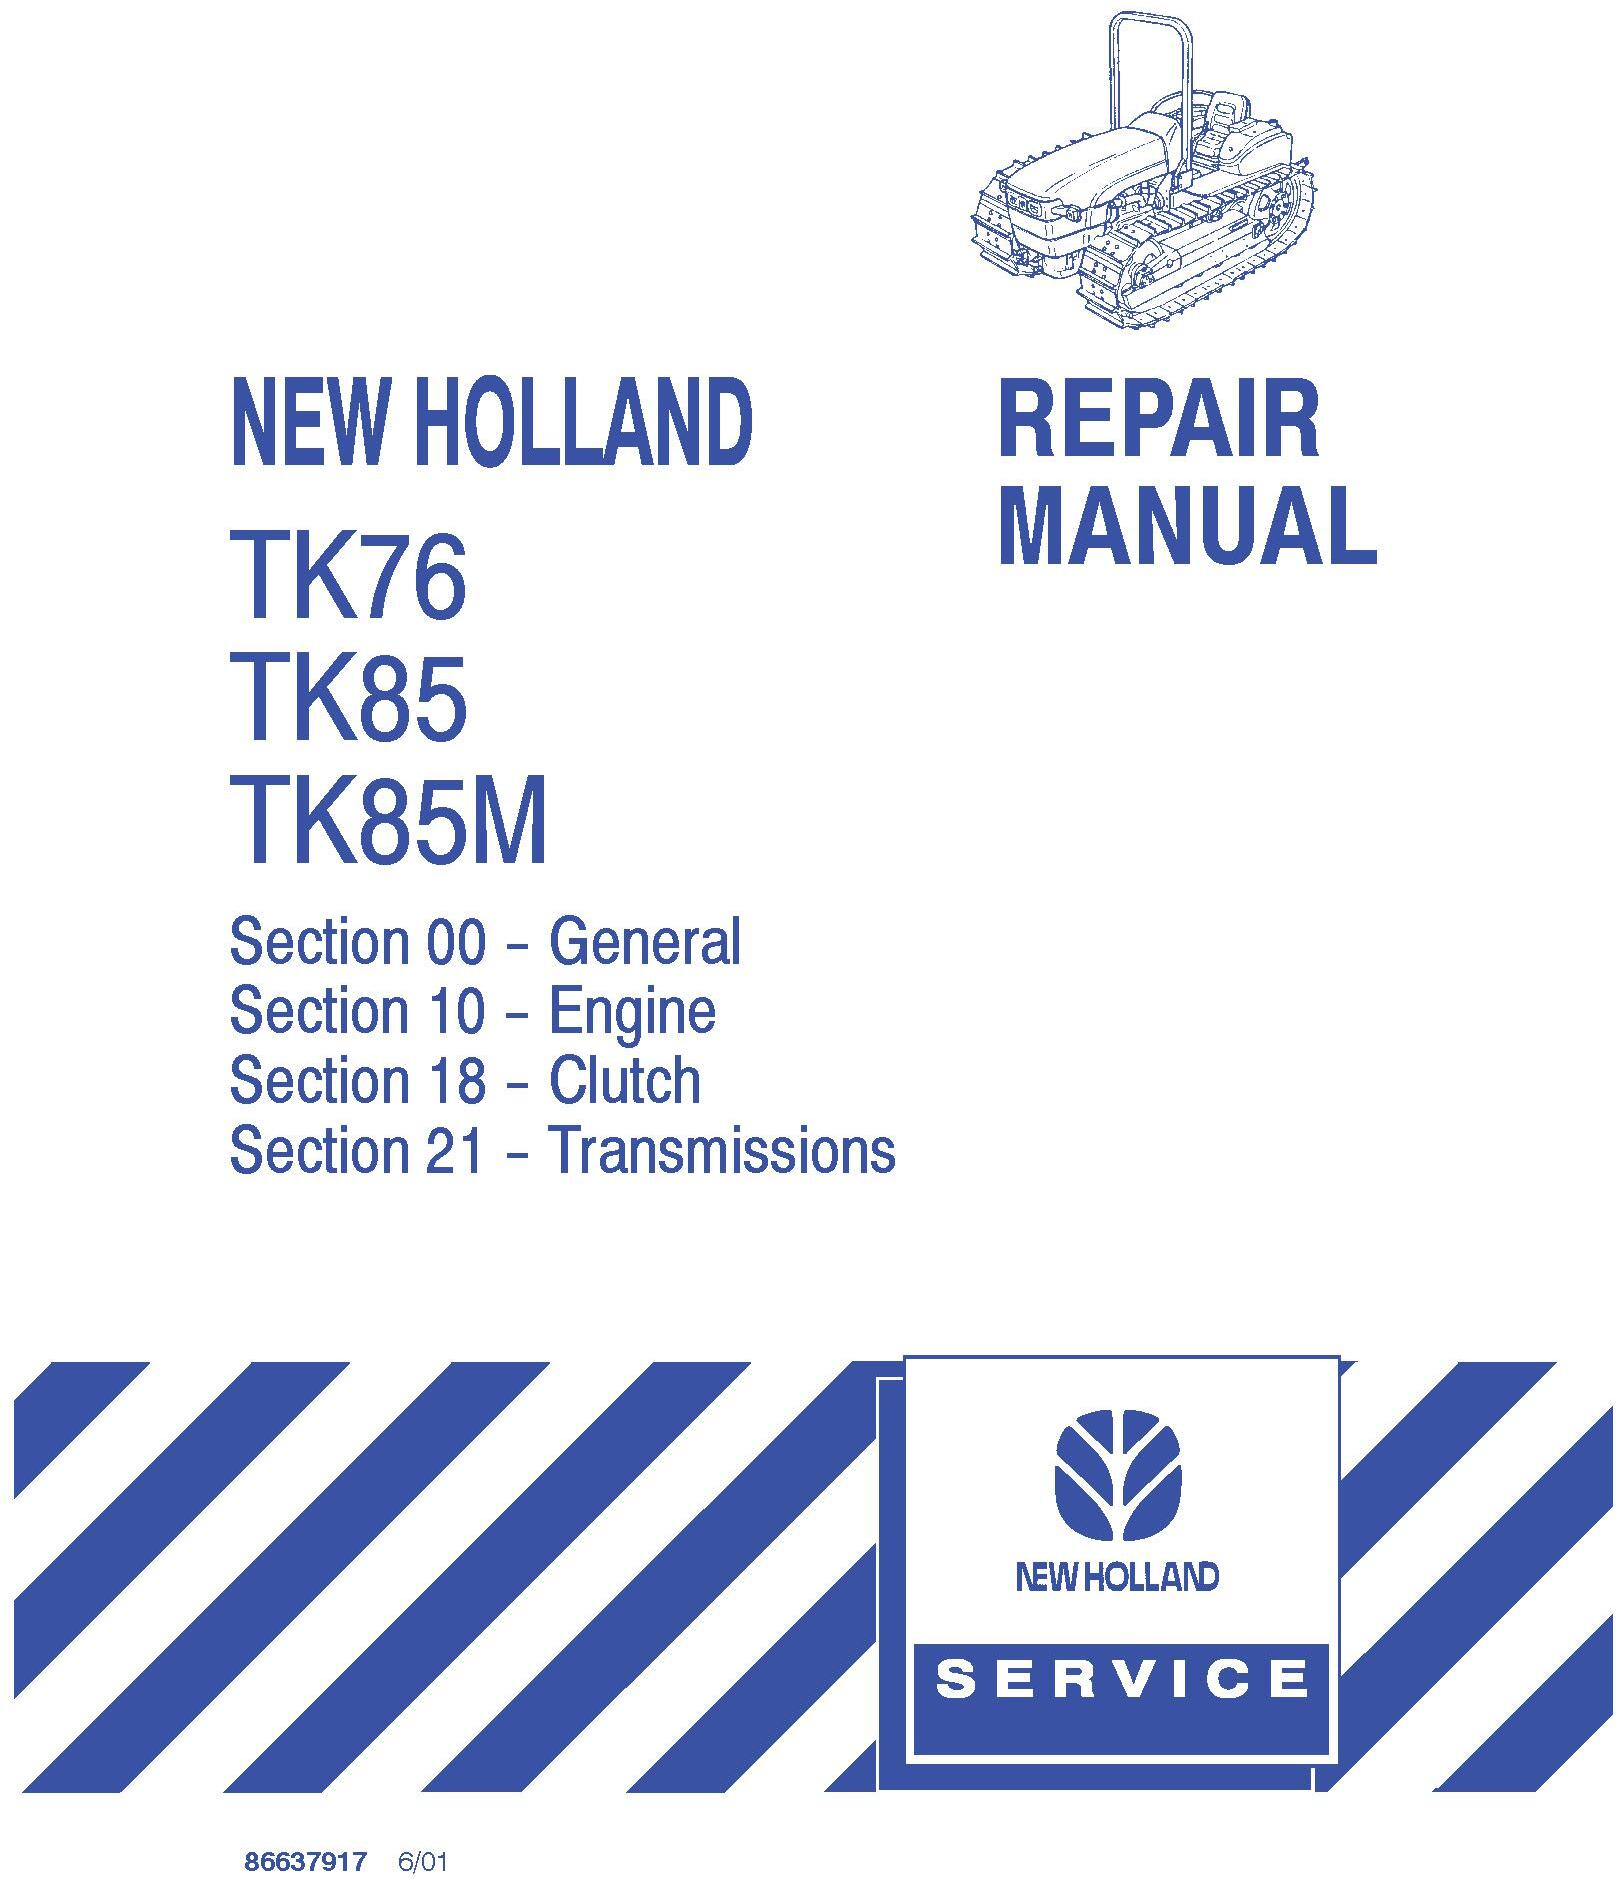 New Holland TK76, TK85, TK85M Crawler Tractor Complete Service Manual - 20000